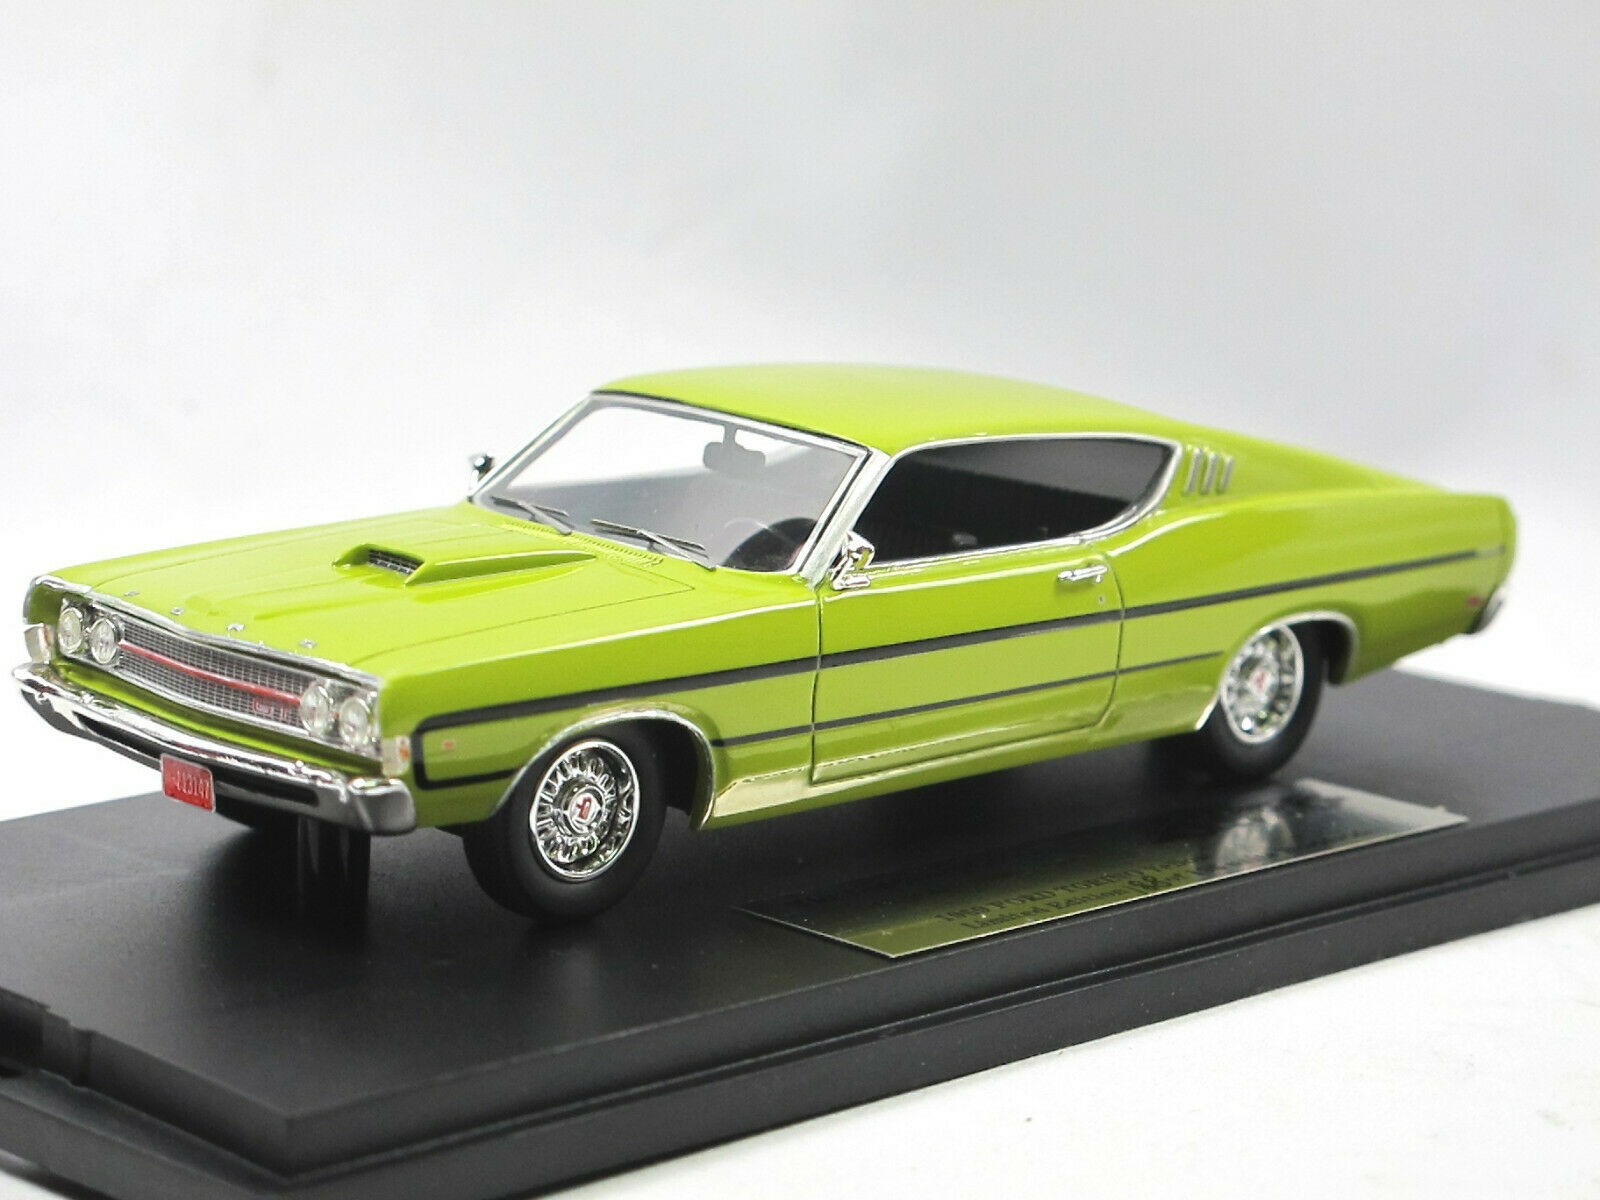 orVARG COLLECTION gc-009b - 1969 FORD TORINO-jaune - 1 43 Limited